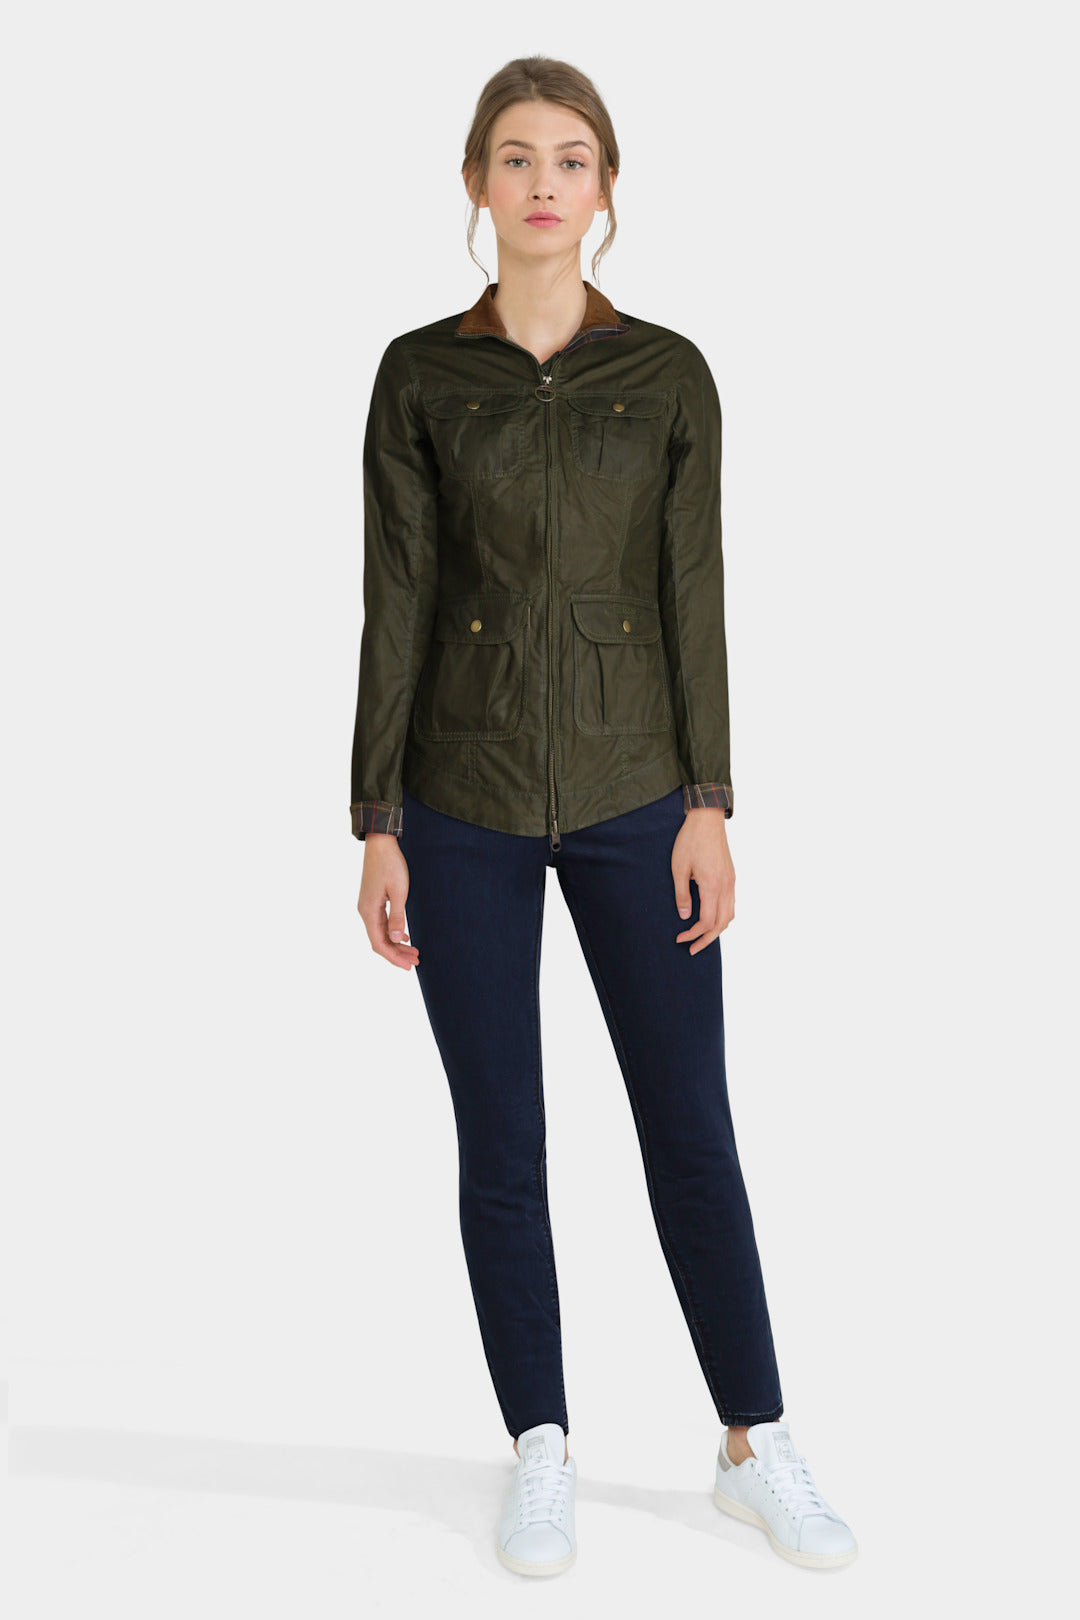 Green Barbour Jacket With Skinny Jeans